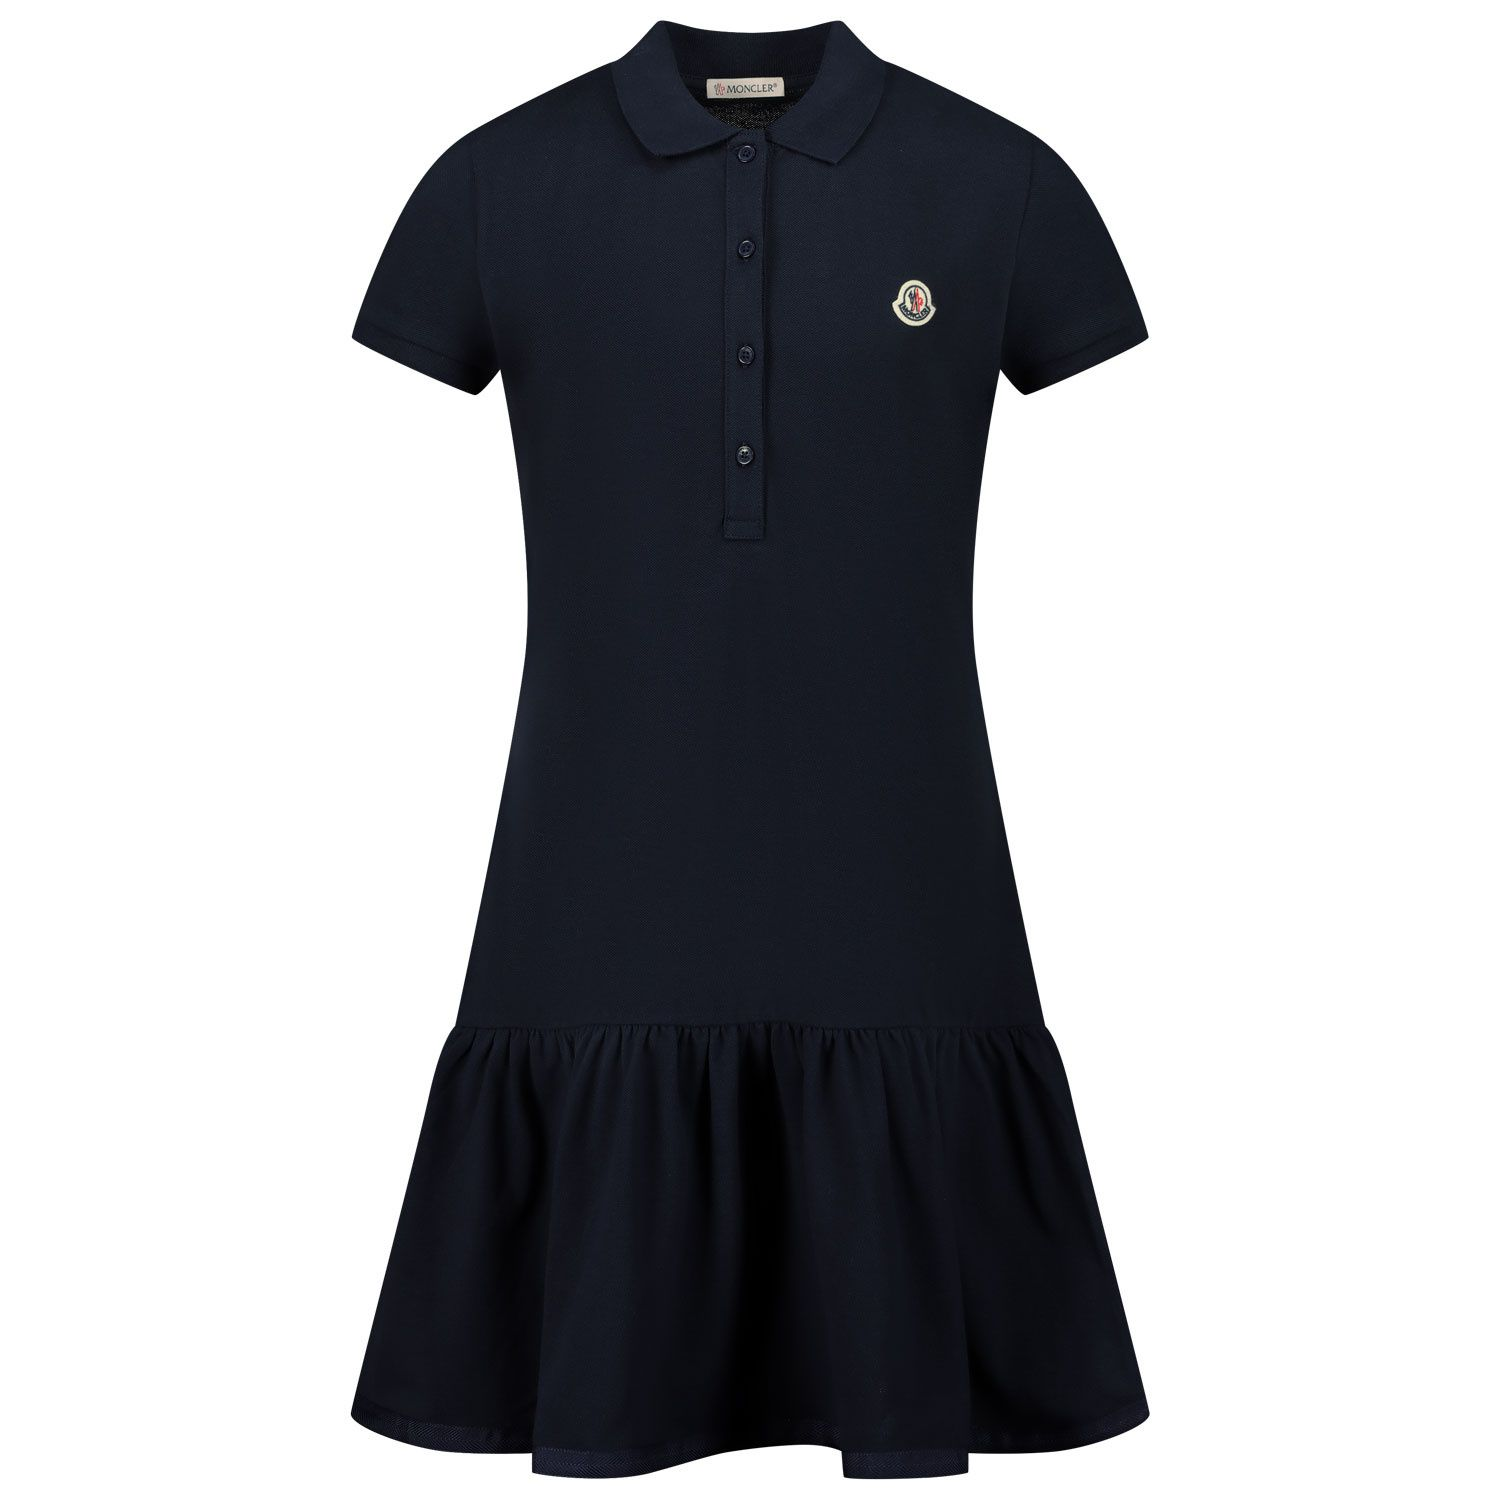 Picture of Moncler 8I70010 kids dress navy